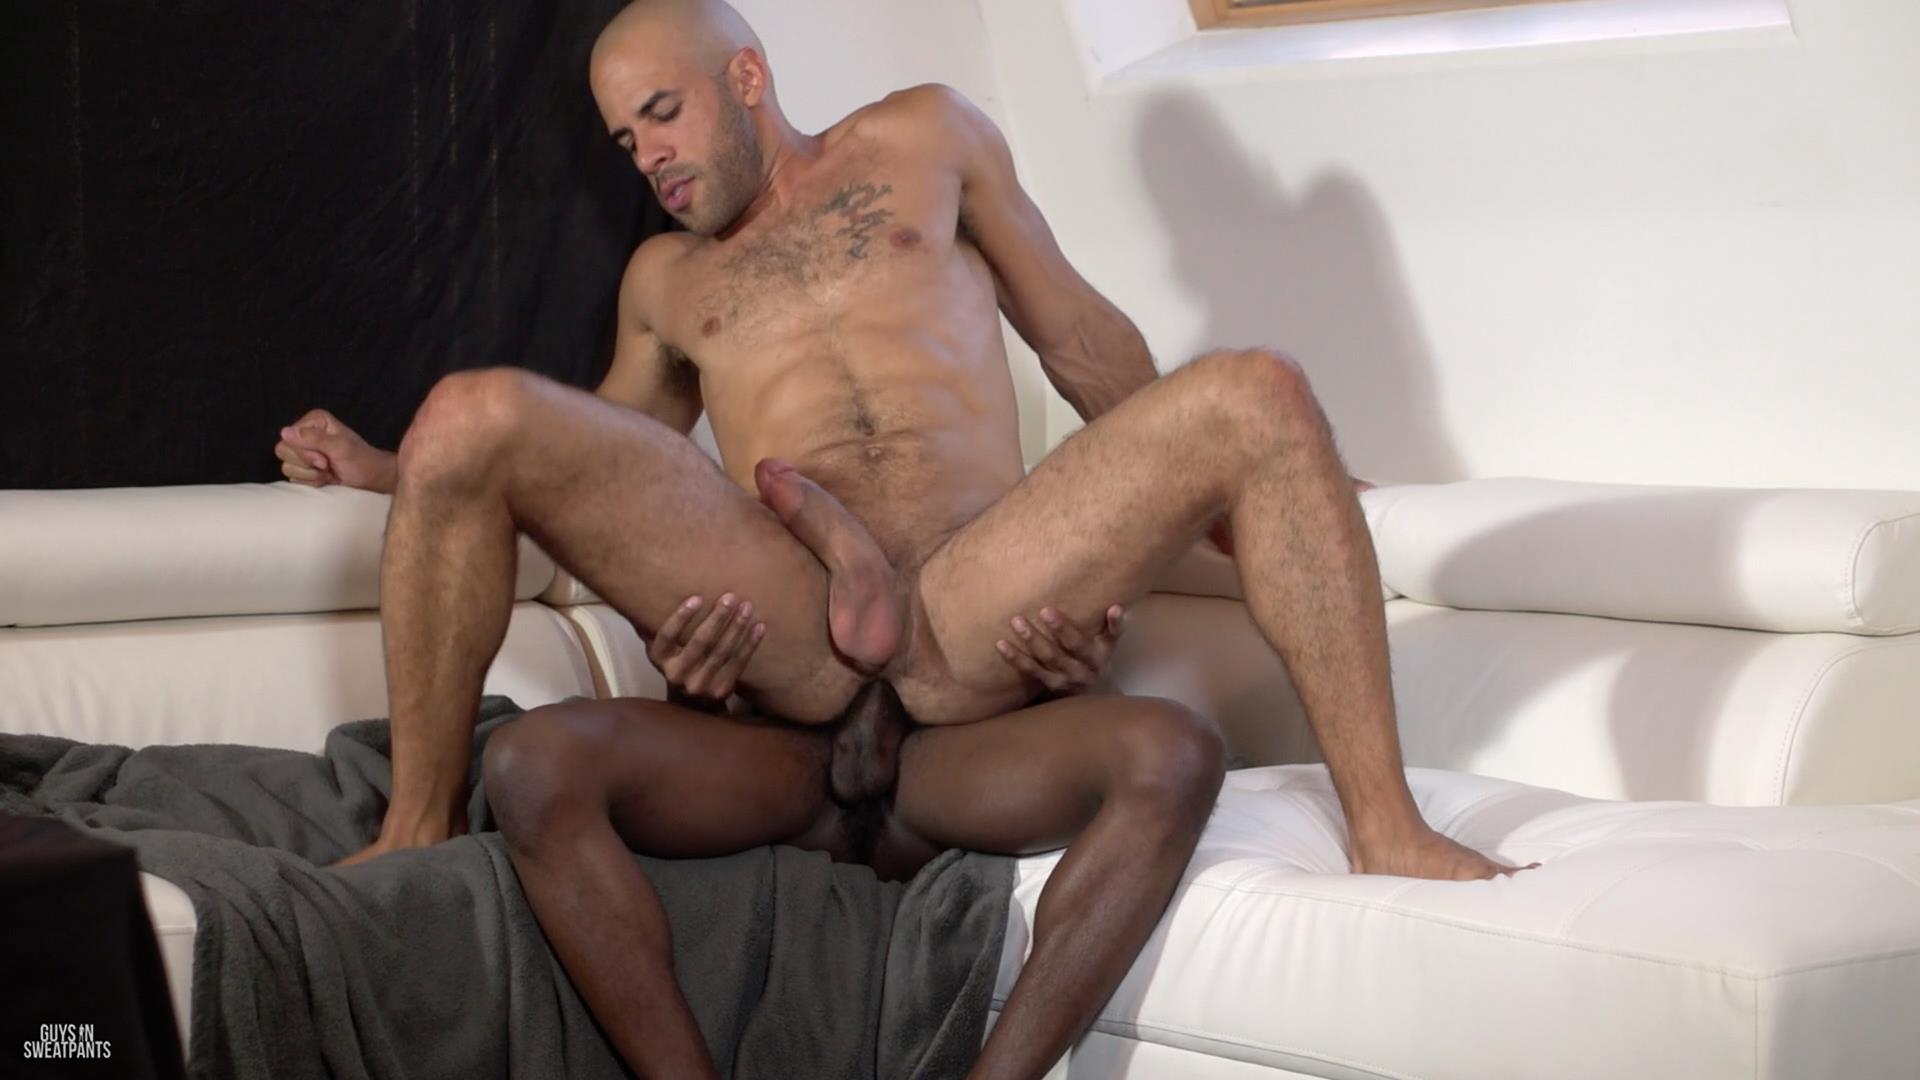 Guys in Sweatpants Austin Wilde and Liam Cyber Bareback Interracial Sex Amateur Gay Porn 07 Austin Wilde Takes A Big Black Bareback Cock Up The Ass